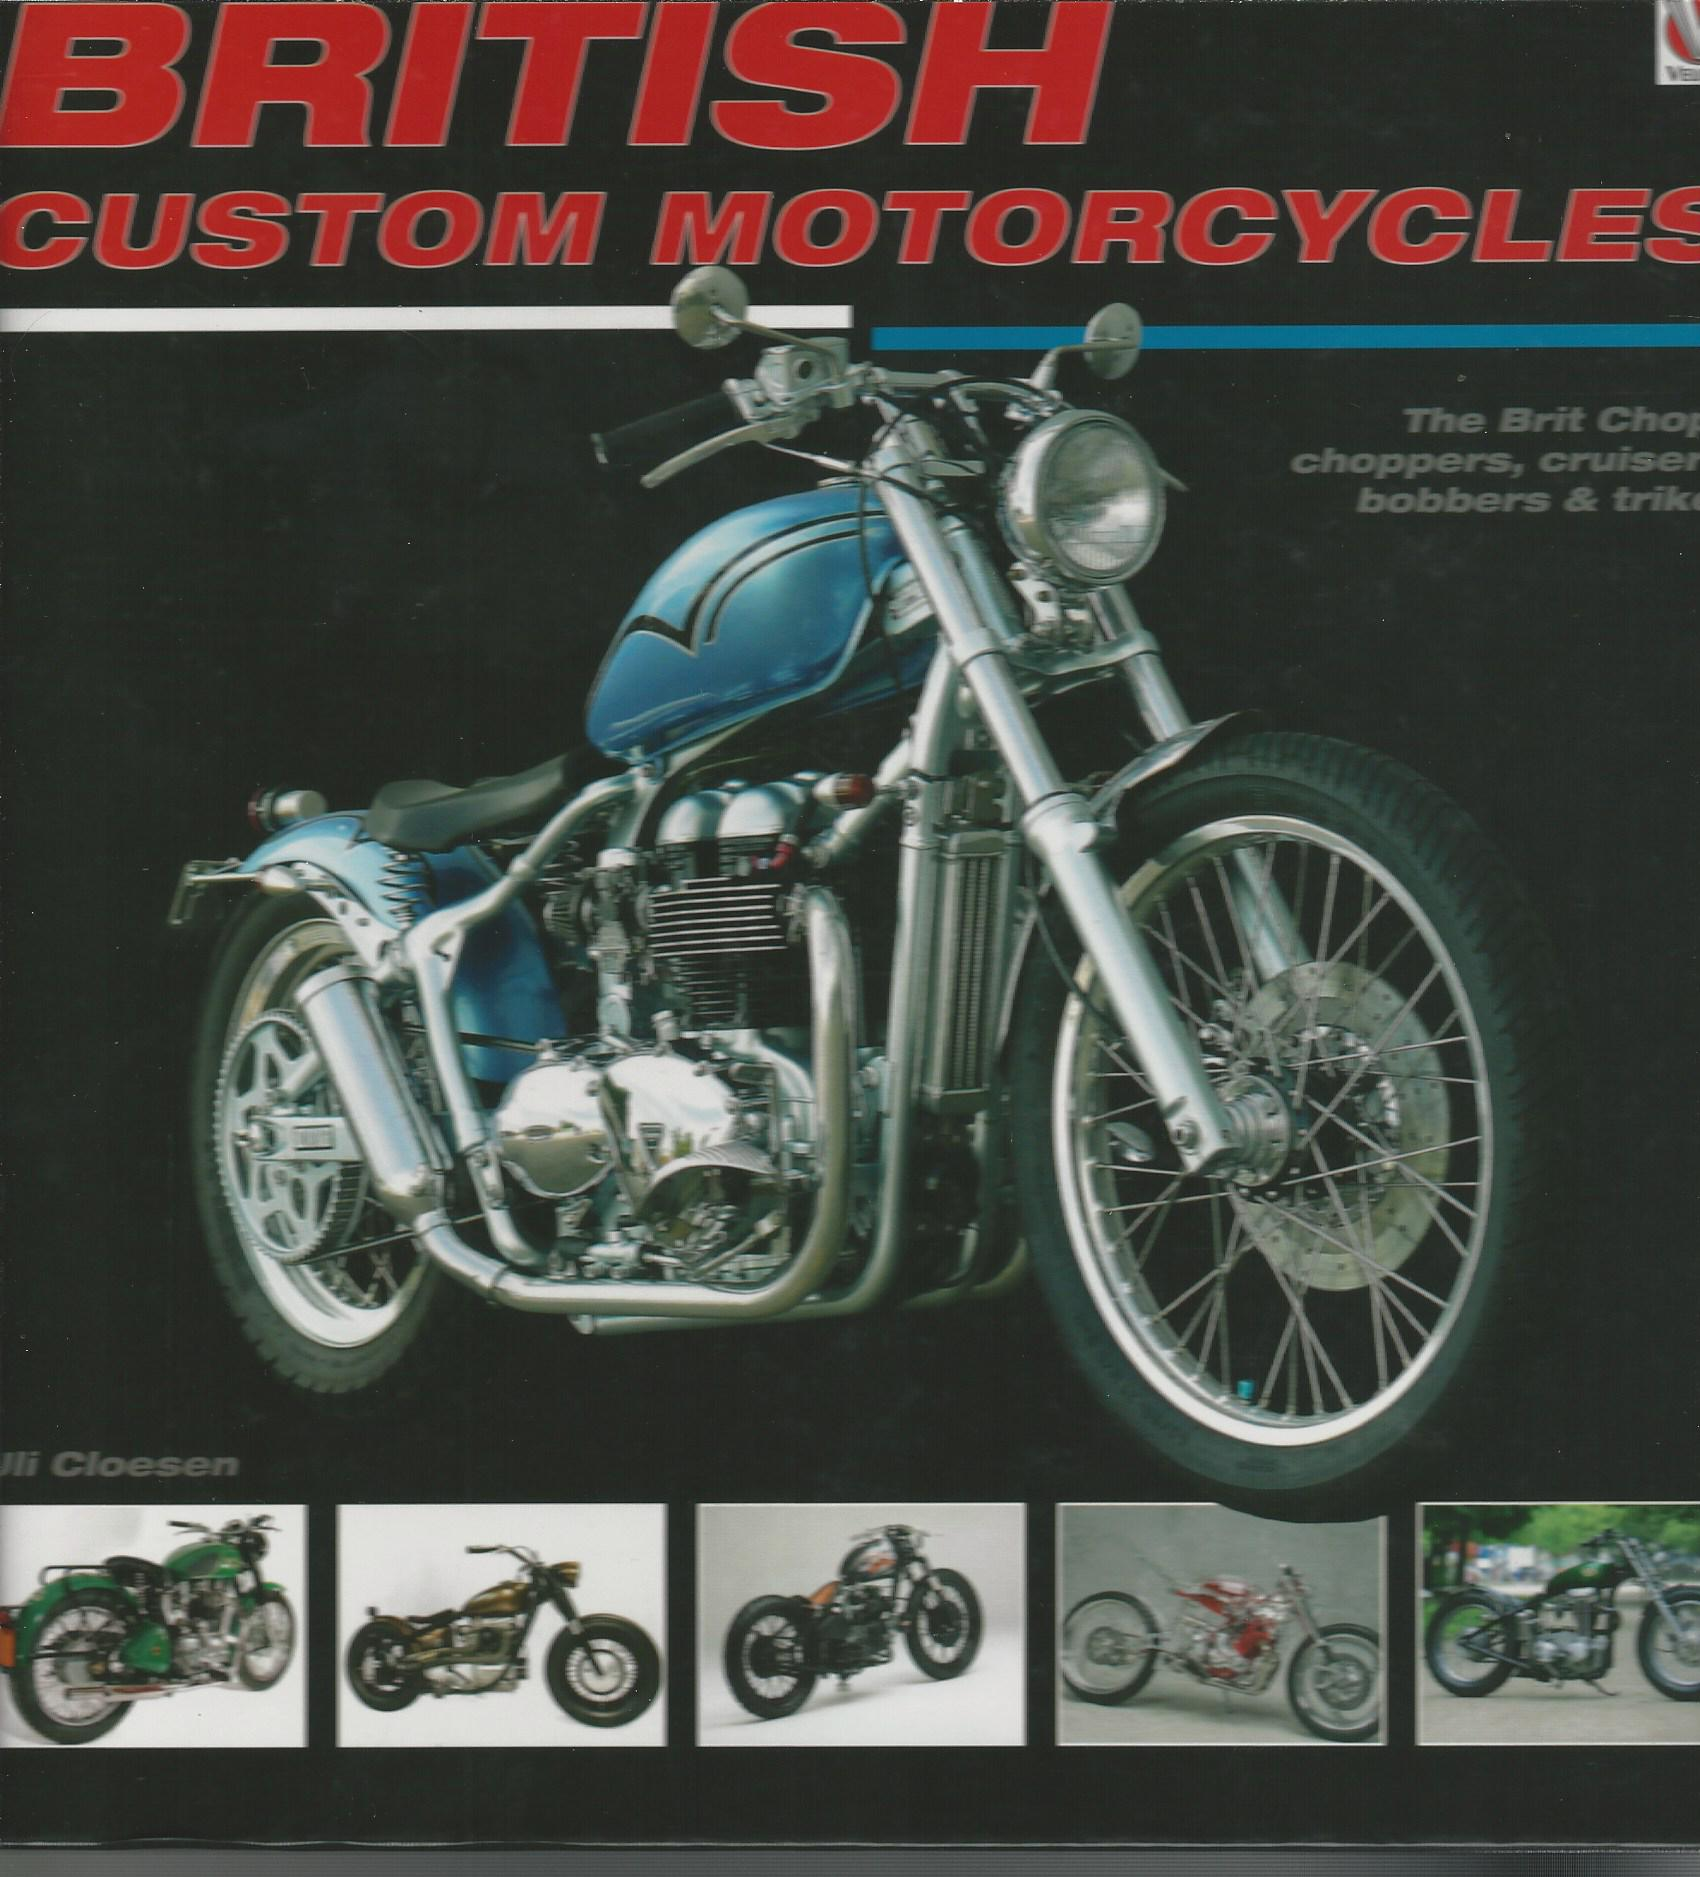 Image for British Custom Motorcycles: The Brit Chop - Choppers, Cruisers, Bobbers & Trikes.